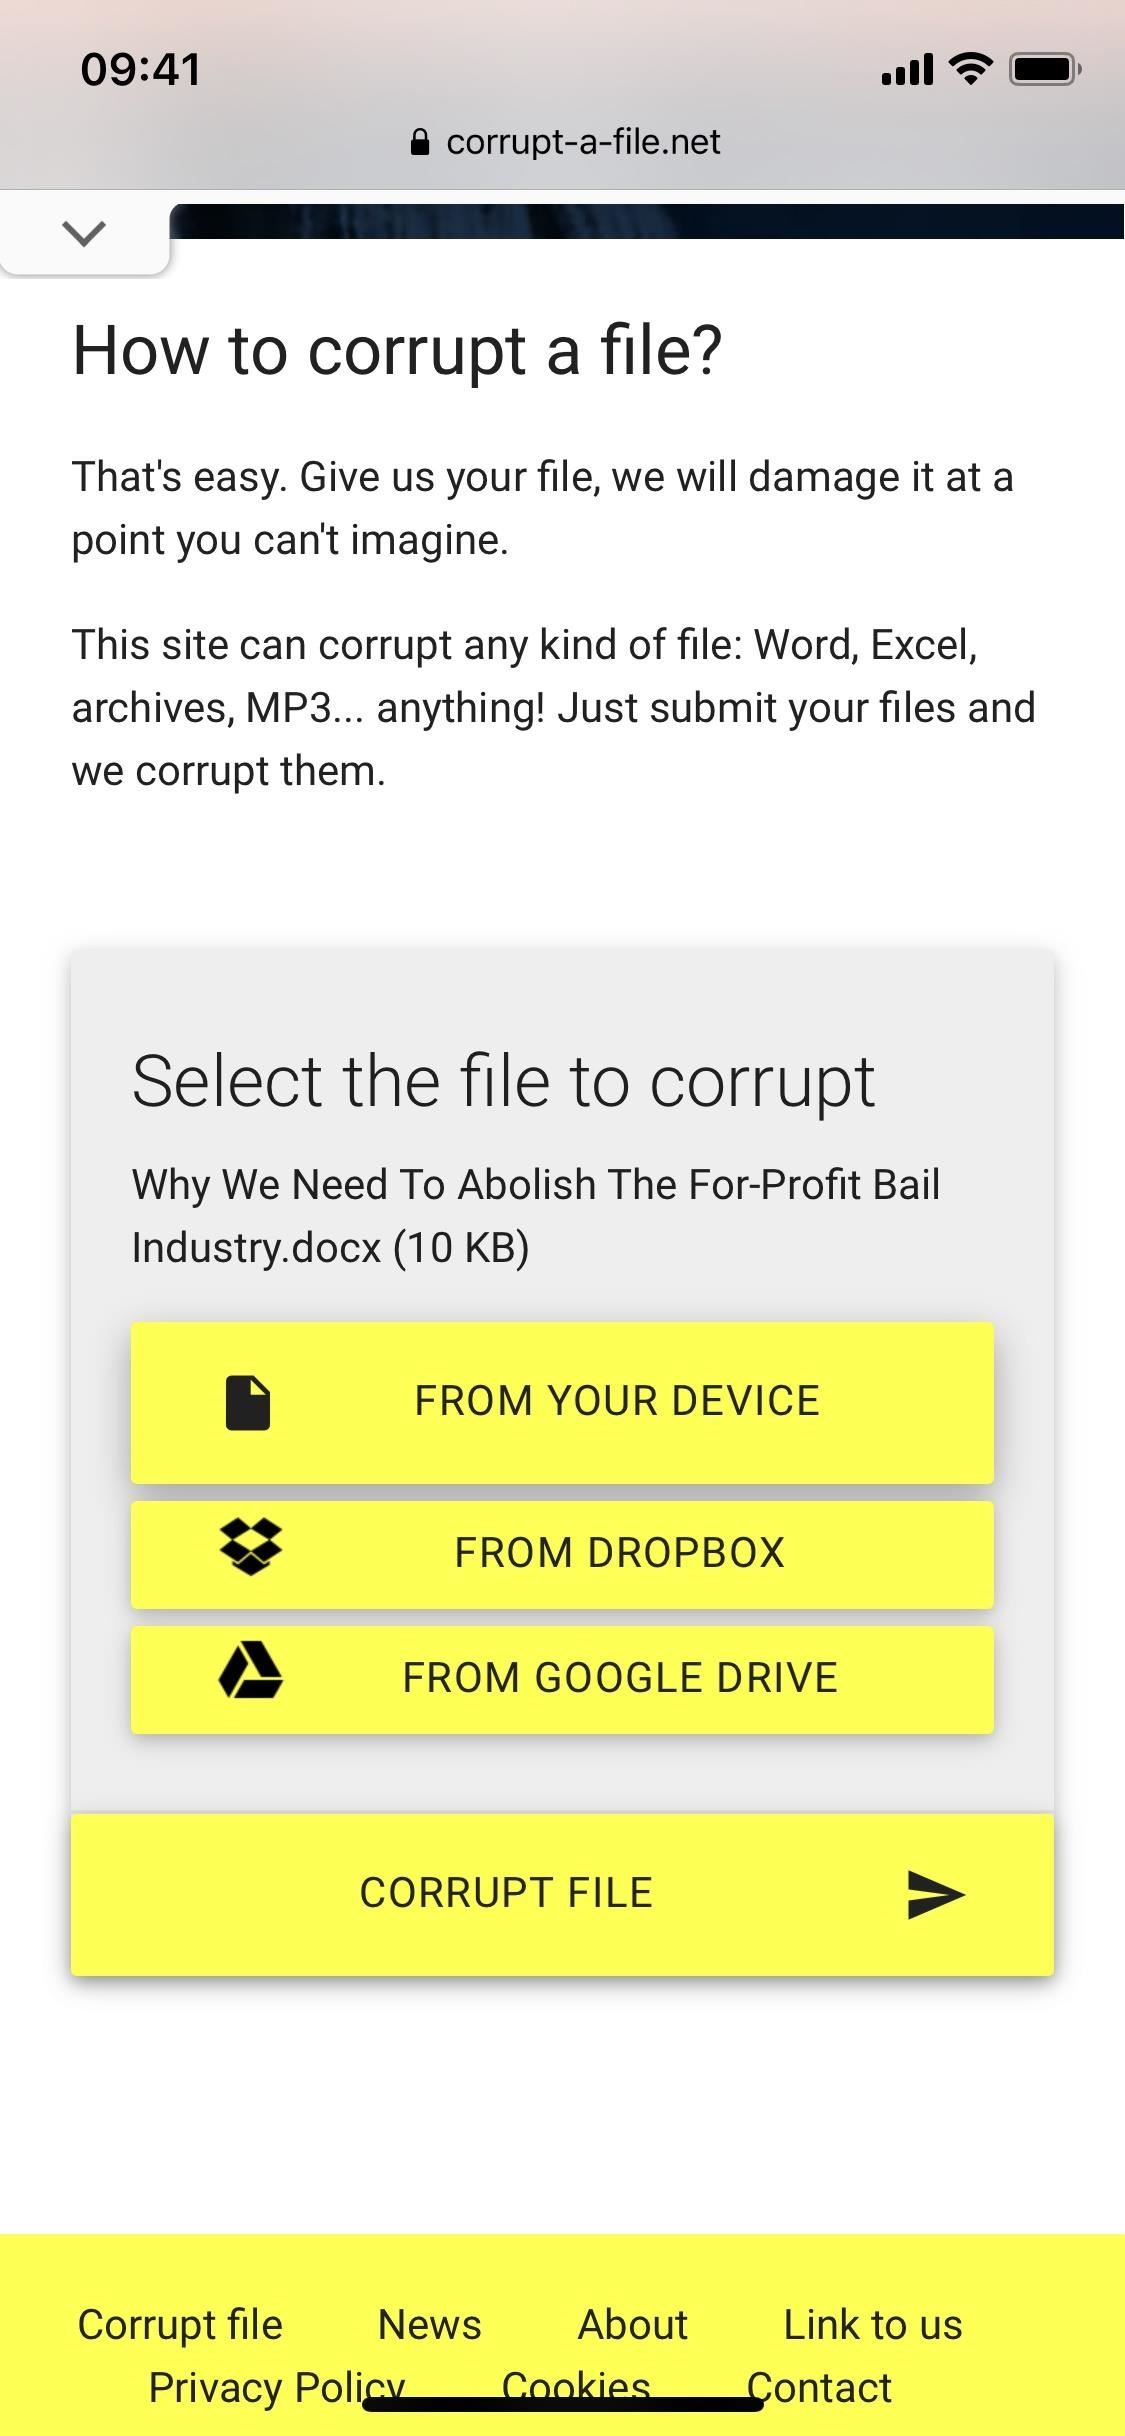 Need More Time on a Work Assignment or School Project? Corrupt Your Files to Extend Your Deadline Without Question